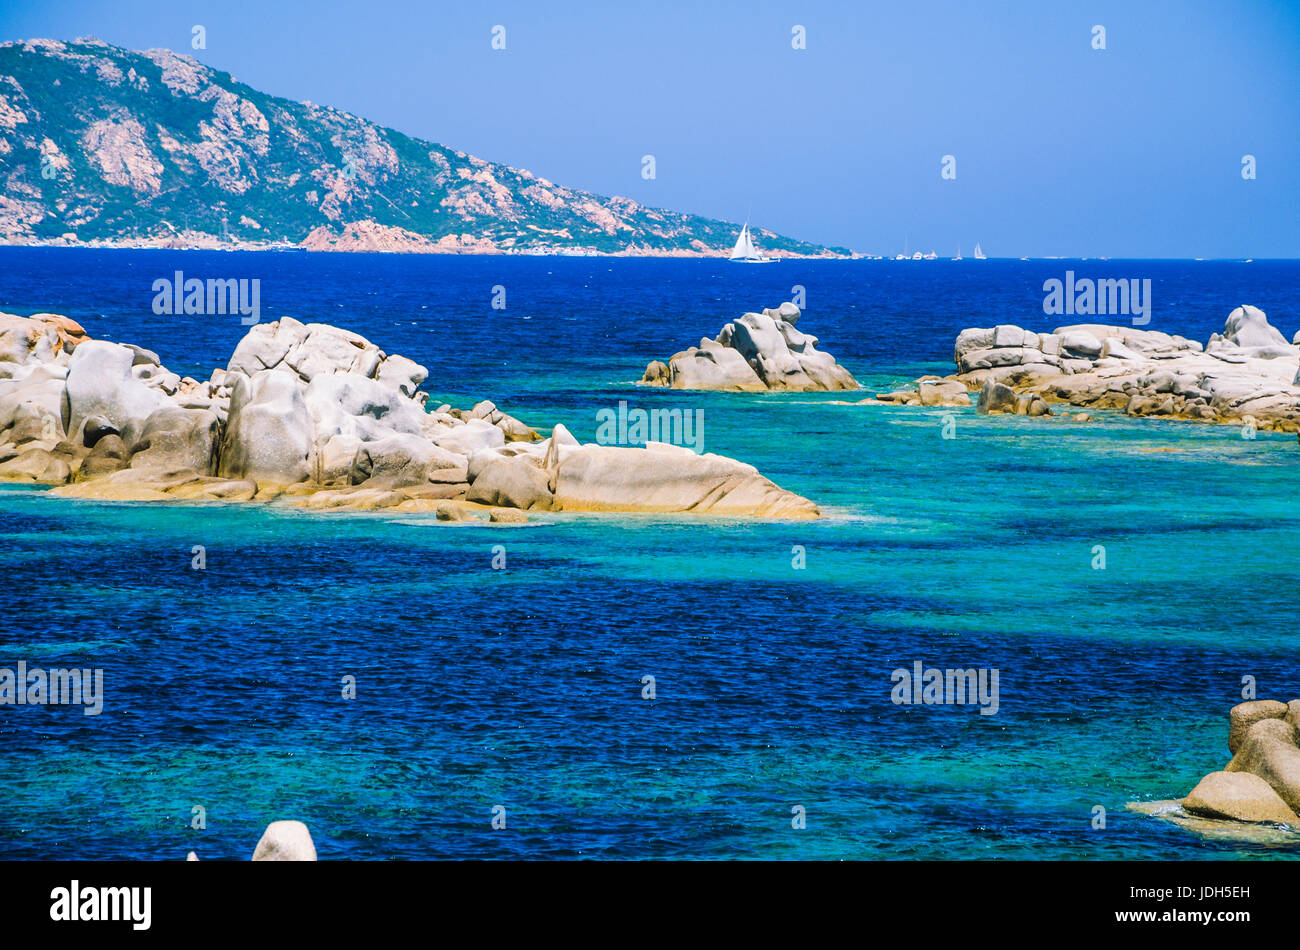 Granite rocks in sea, amazing azure water, white sailboat in background near Porto Pollo, Sardinia, Italy. - Stock Image